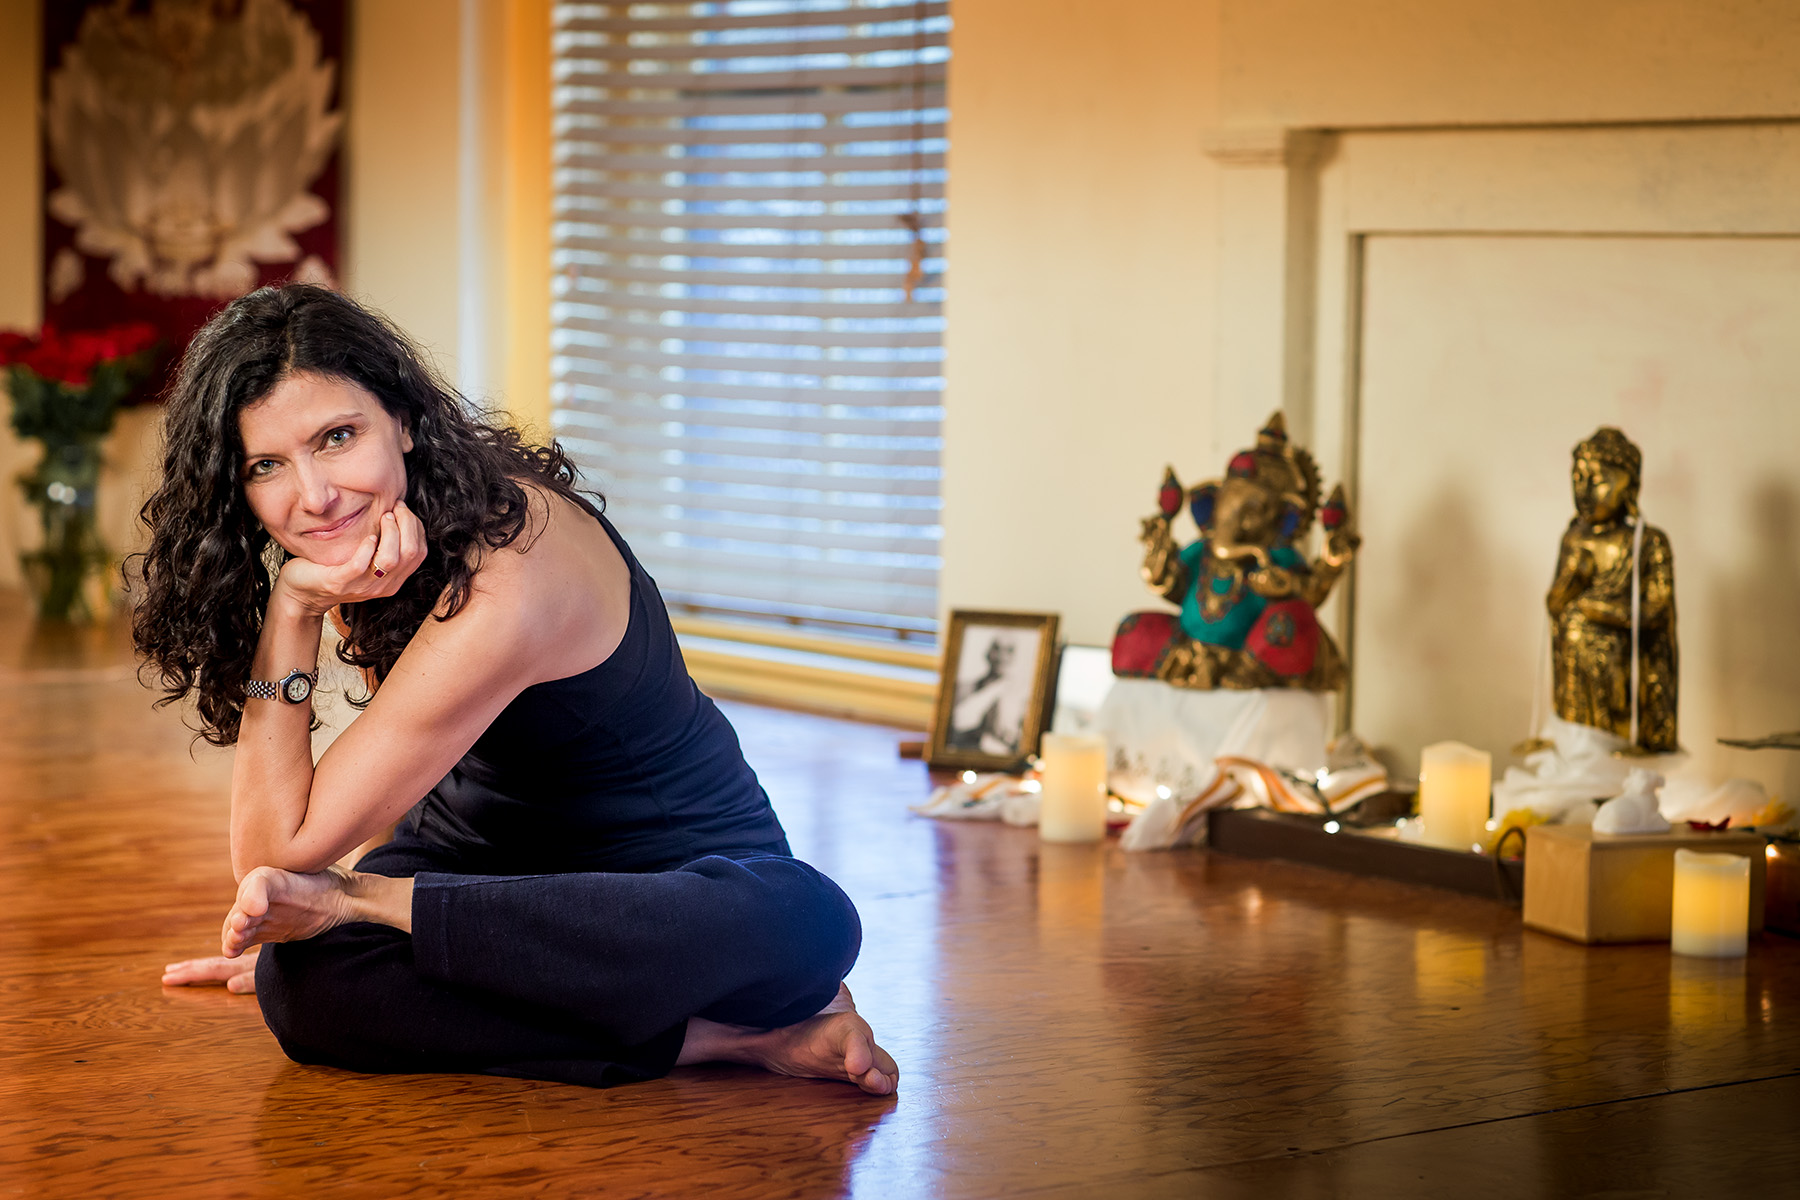 Carla Ola of Rhinebeck Yoga